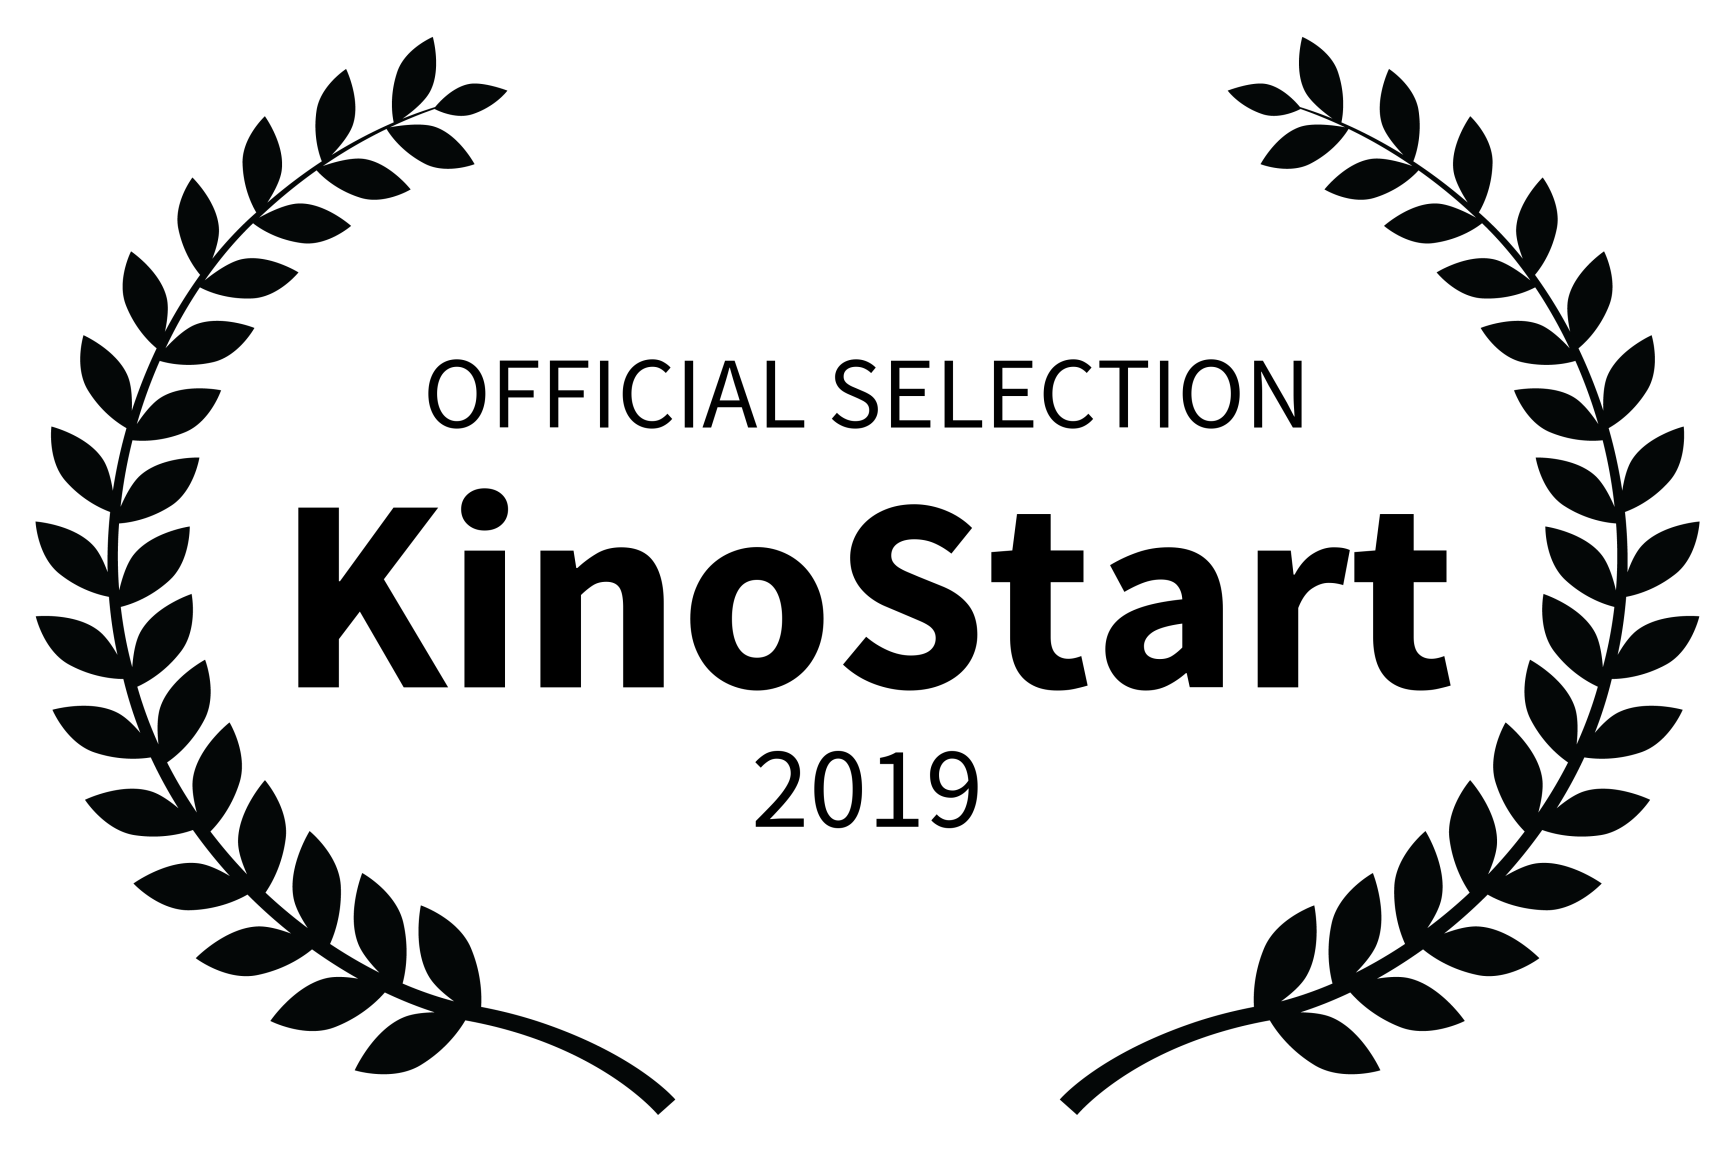 OFFICIAL SELECTION - KinoStart - 2019